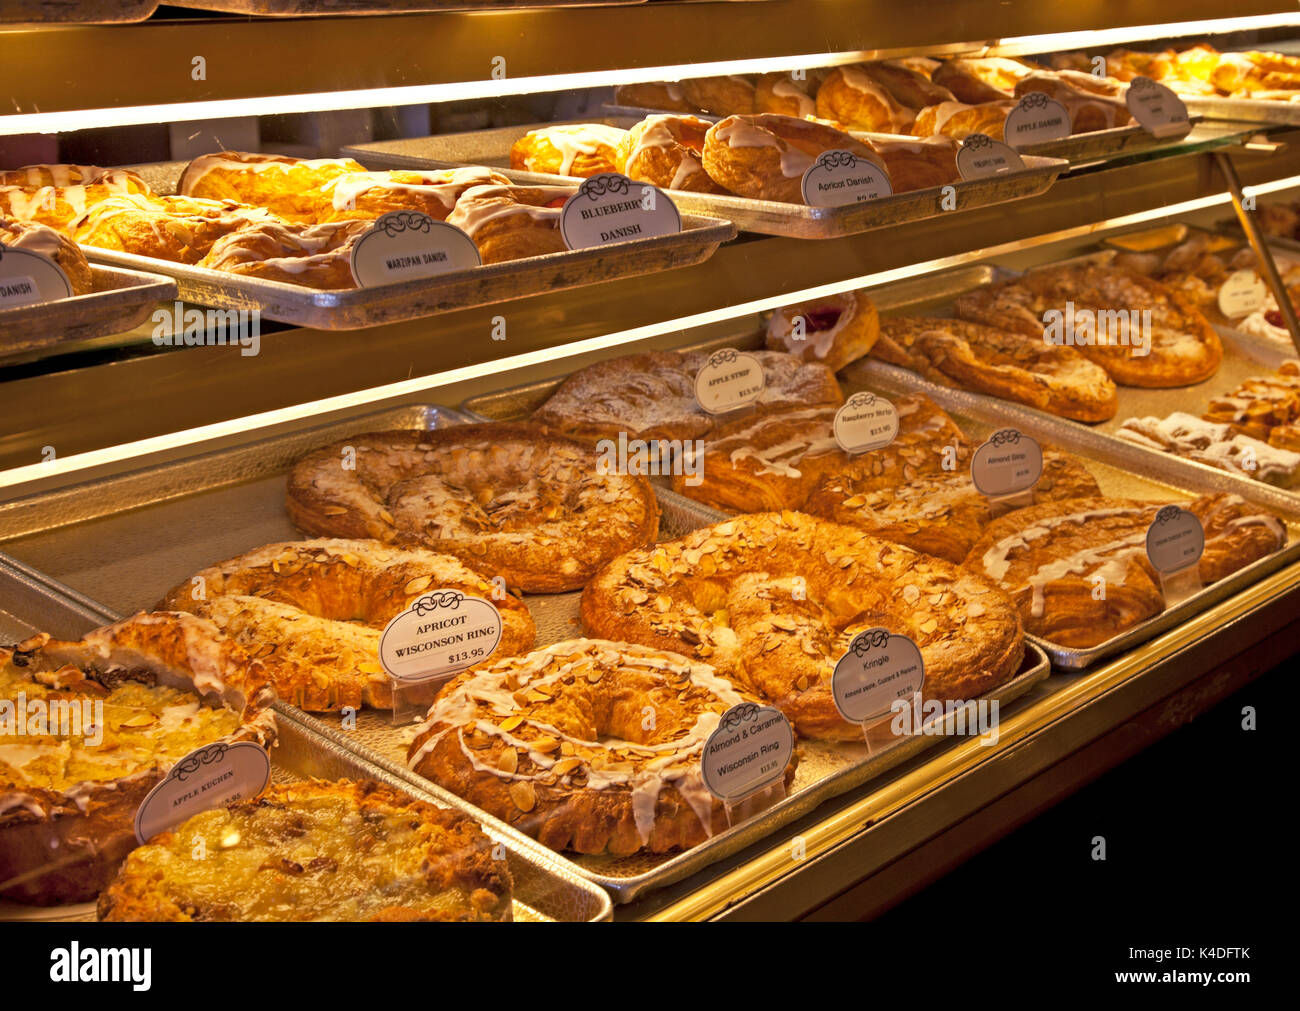 The array of Danish pastries, from cookies and kringles to aebleskiver and torts, is overwhelming in all of Solvang's Danish bakeries. - Stock Image